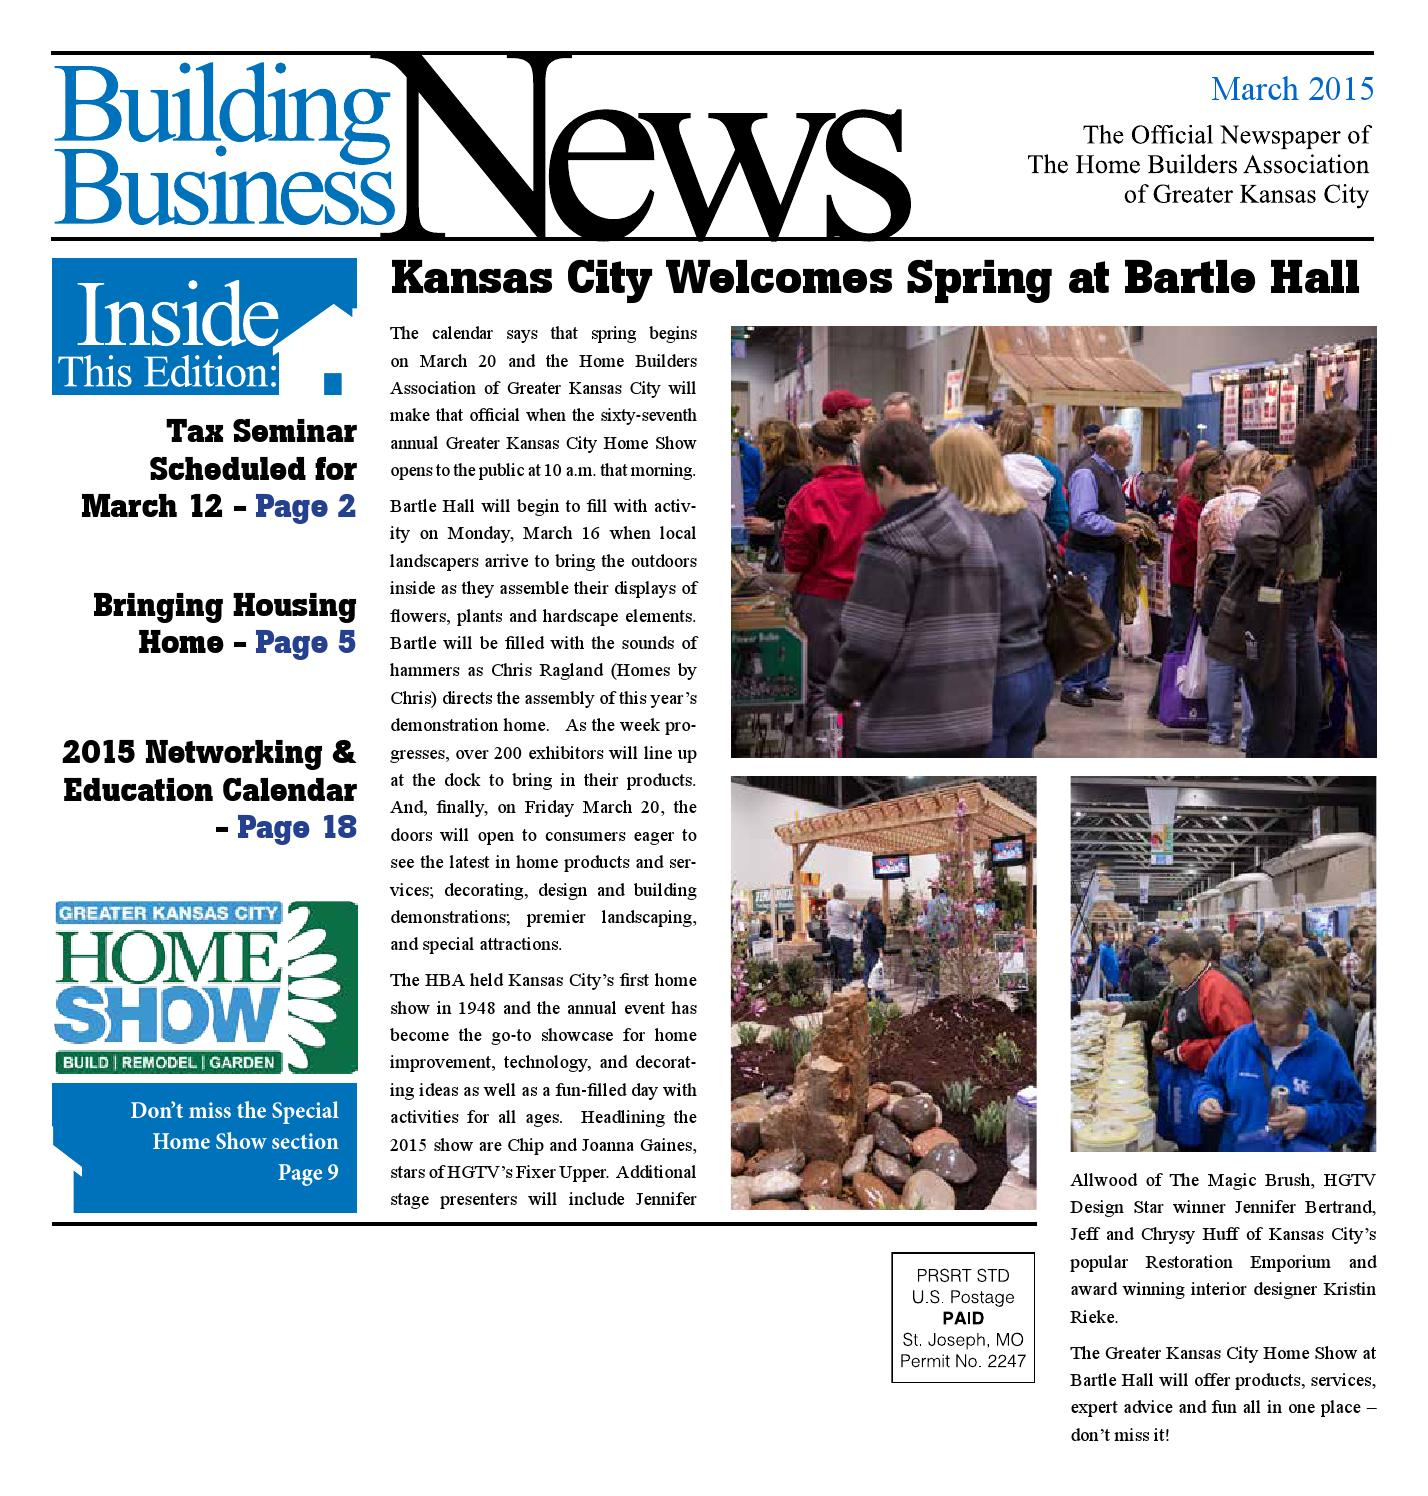 Celebration fl bank 173 owned home with garage apartment nectar real - March 2015 Bbn By Home Builders Association Of Greater Kansas City Issuu